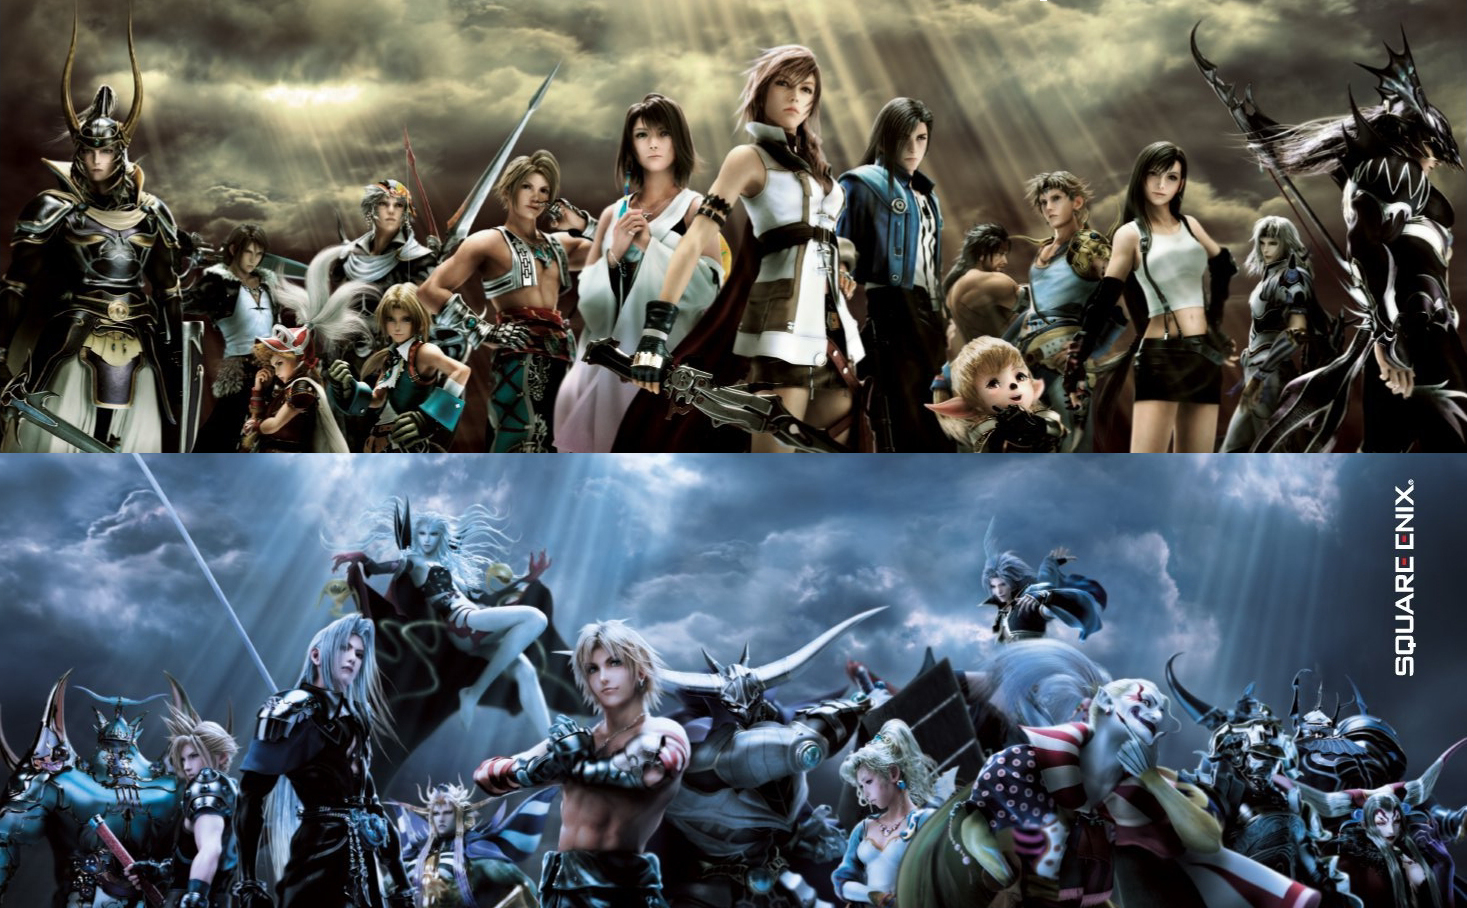 Dissidia 012 Review and Story Analysis – The Lifestream